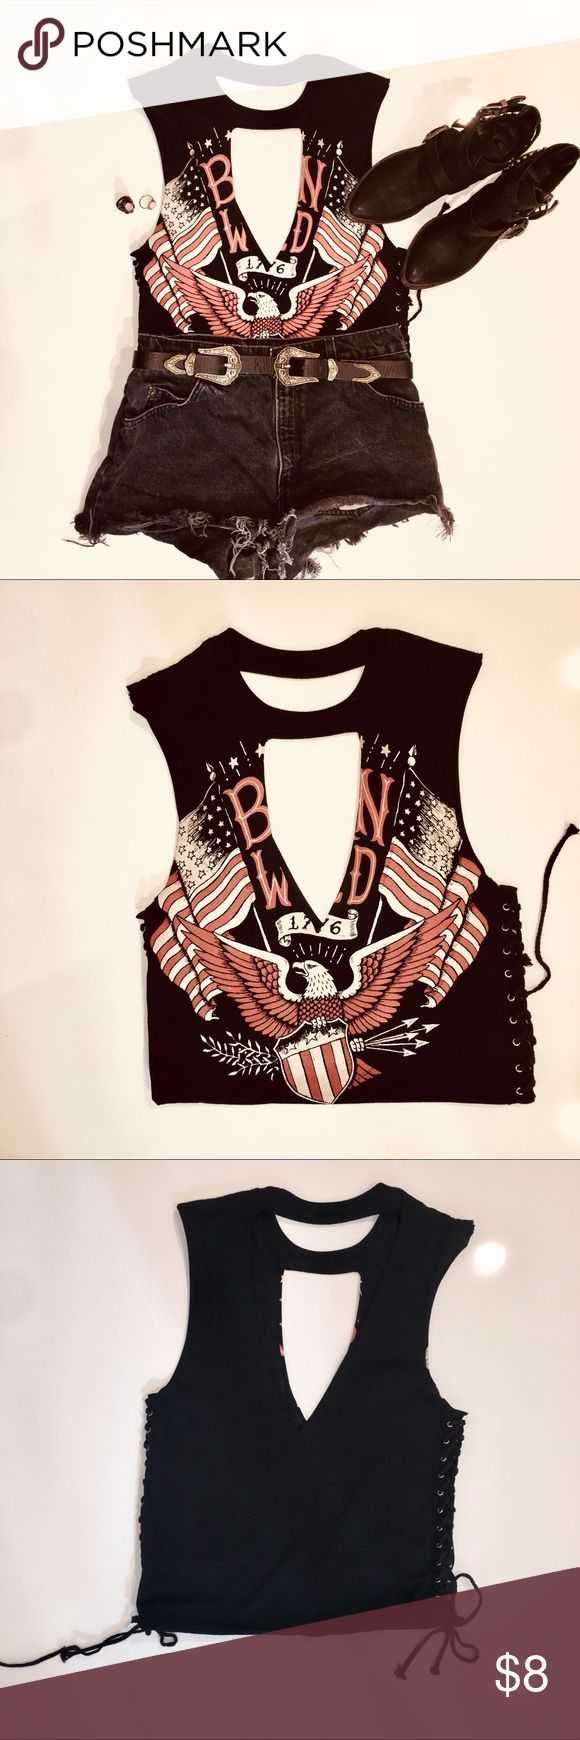 Sexy Rocker Chic Cutout Graphic Muscle Shirt Style a wild night out with your gals with this Born Wild Rocker Chic Tee. Featured with a cut out low neck line and symmetrical back cut out and a double sided lace up look. Forever 21 Tops Muscle Tees